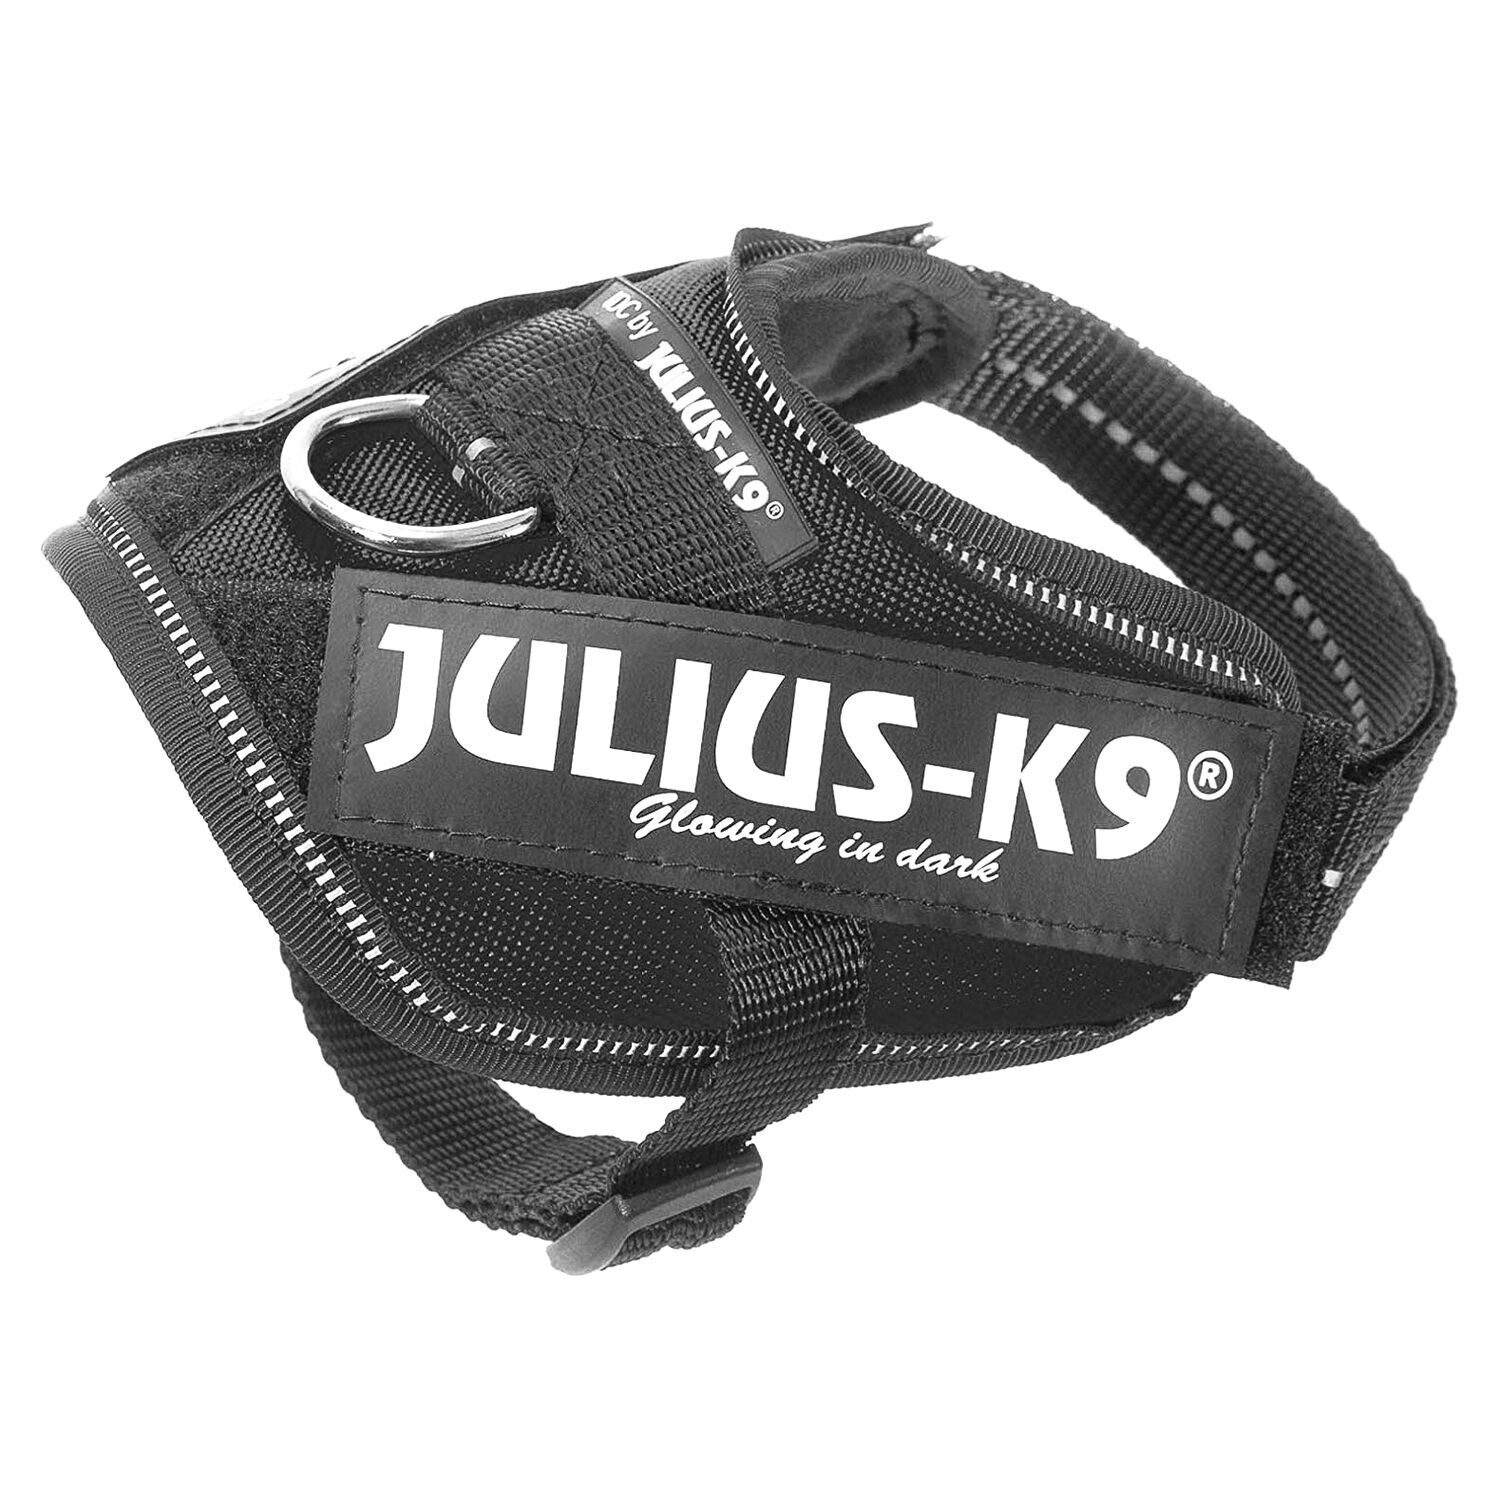 JULIUS-K9 шлейка для собак IDC-Powerharness 1 (63-85см/ 23-30кг), черный